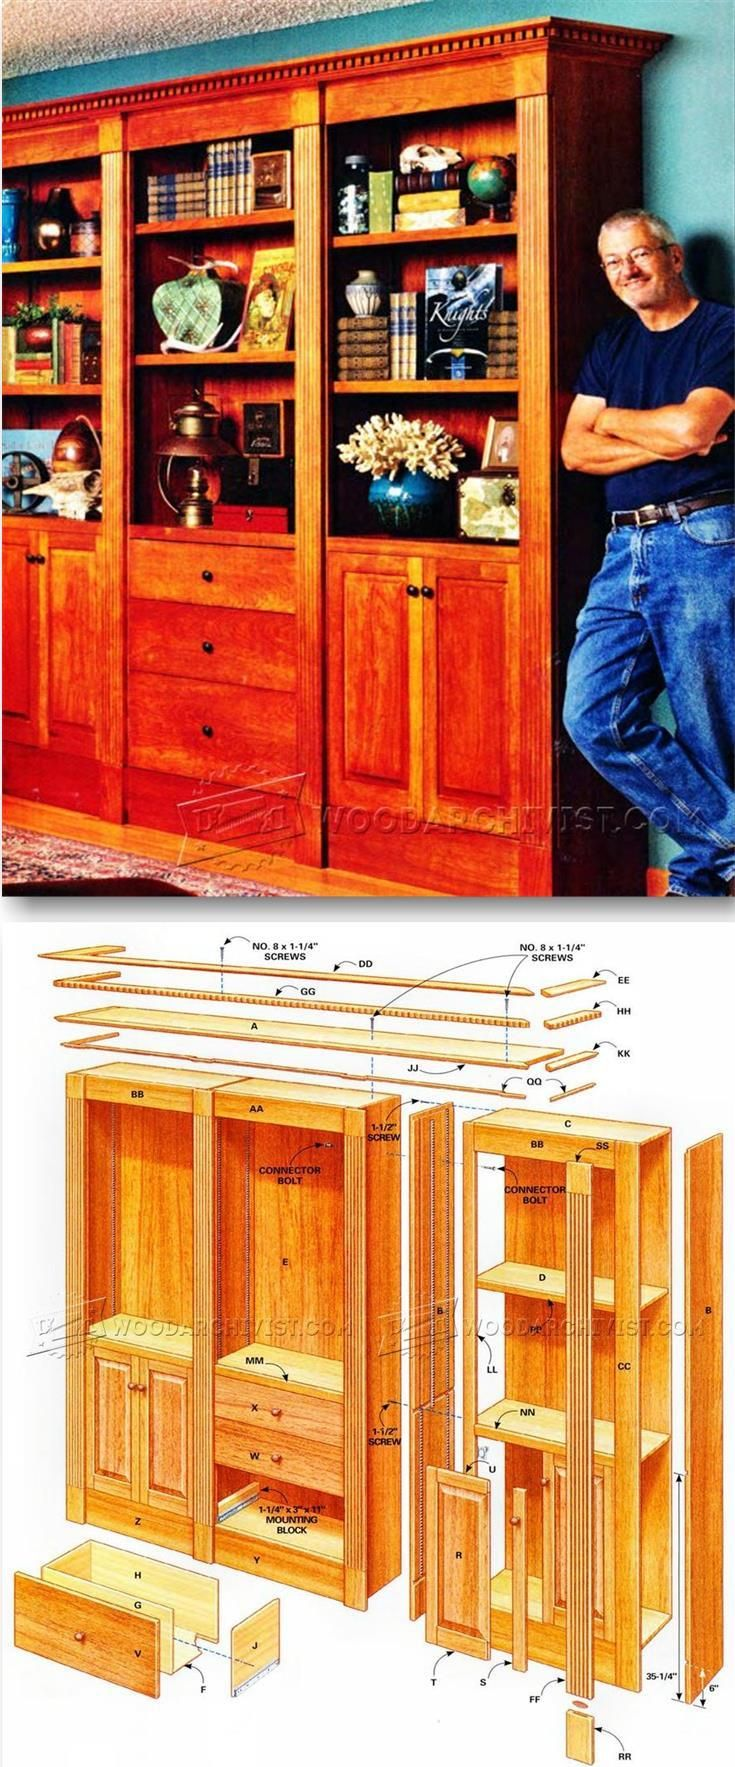 Classic Bookcase Plans - Furniture Plans and Projects | WoodArchivist.com